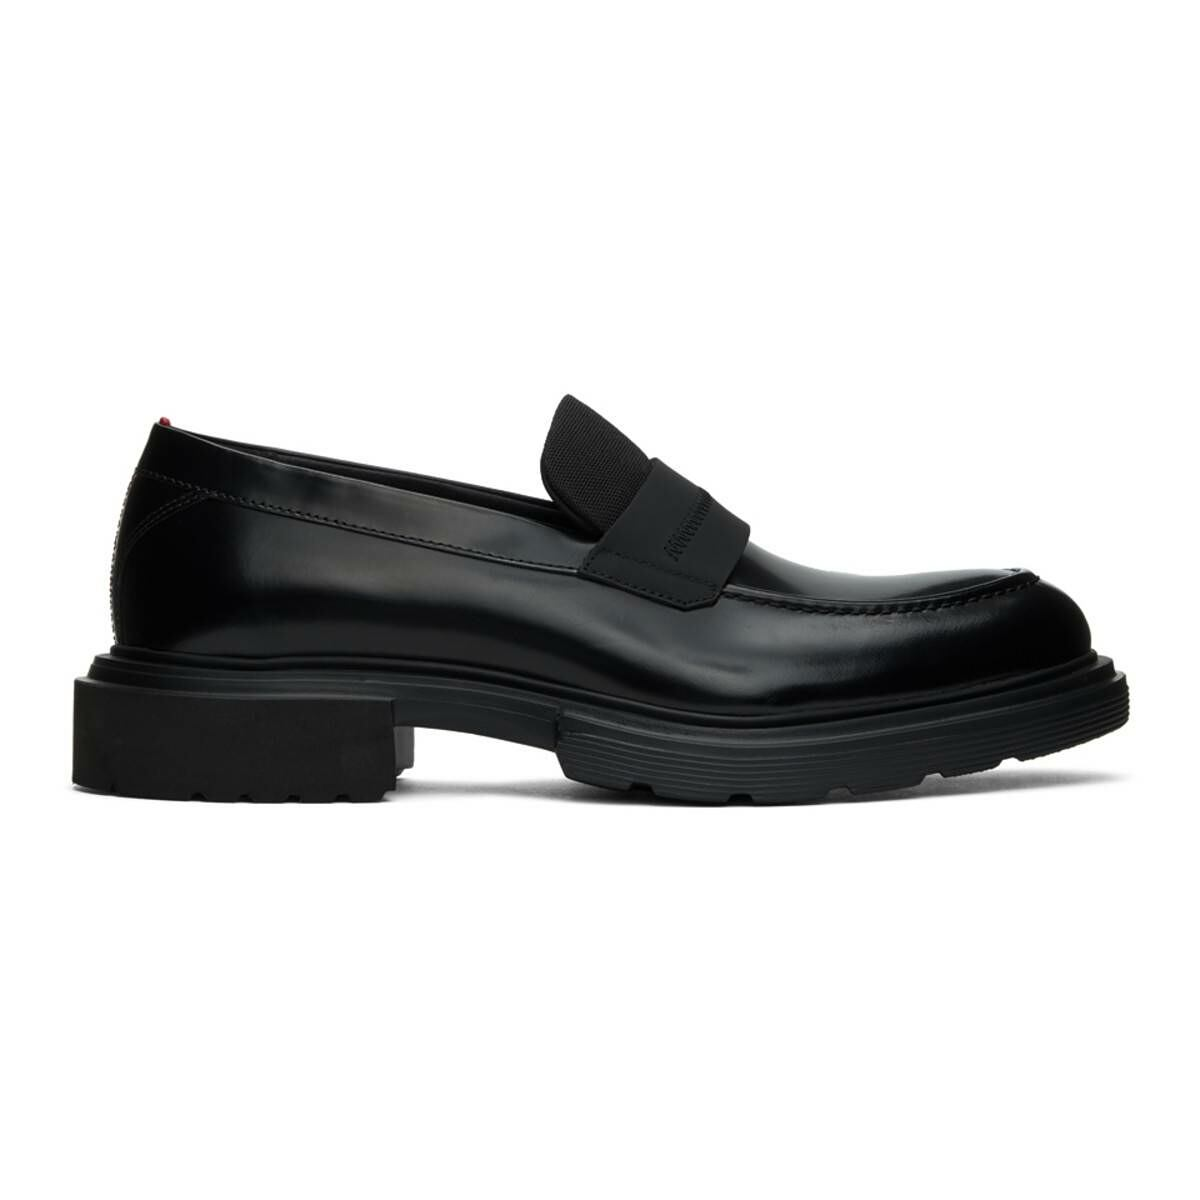 Hugo Black Dart Loafers Ssense USA MEN Men SHOES Mens LOAFERS